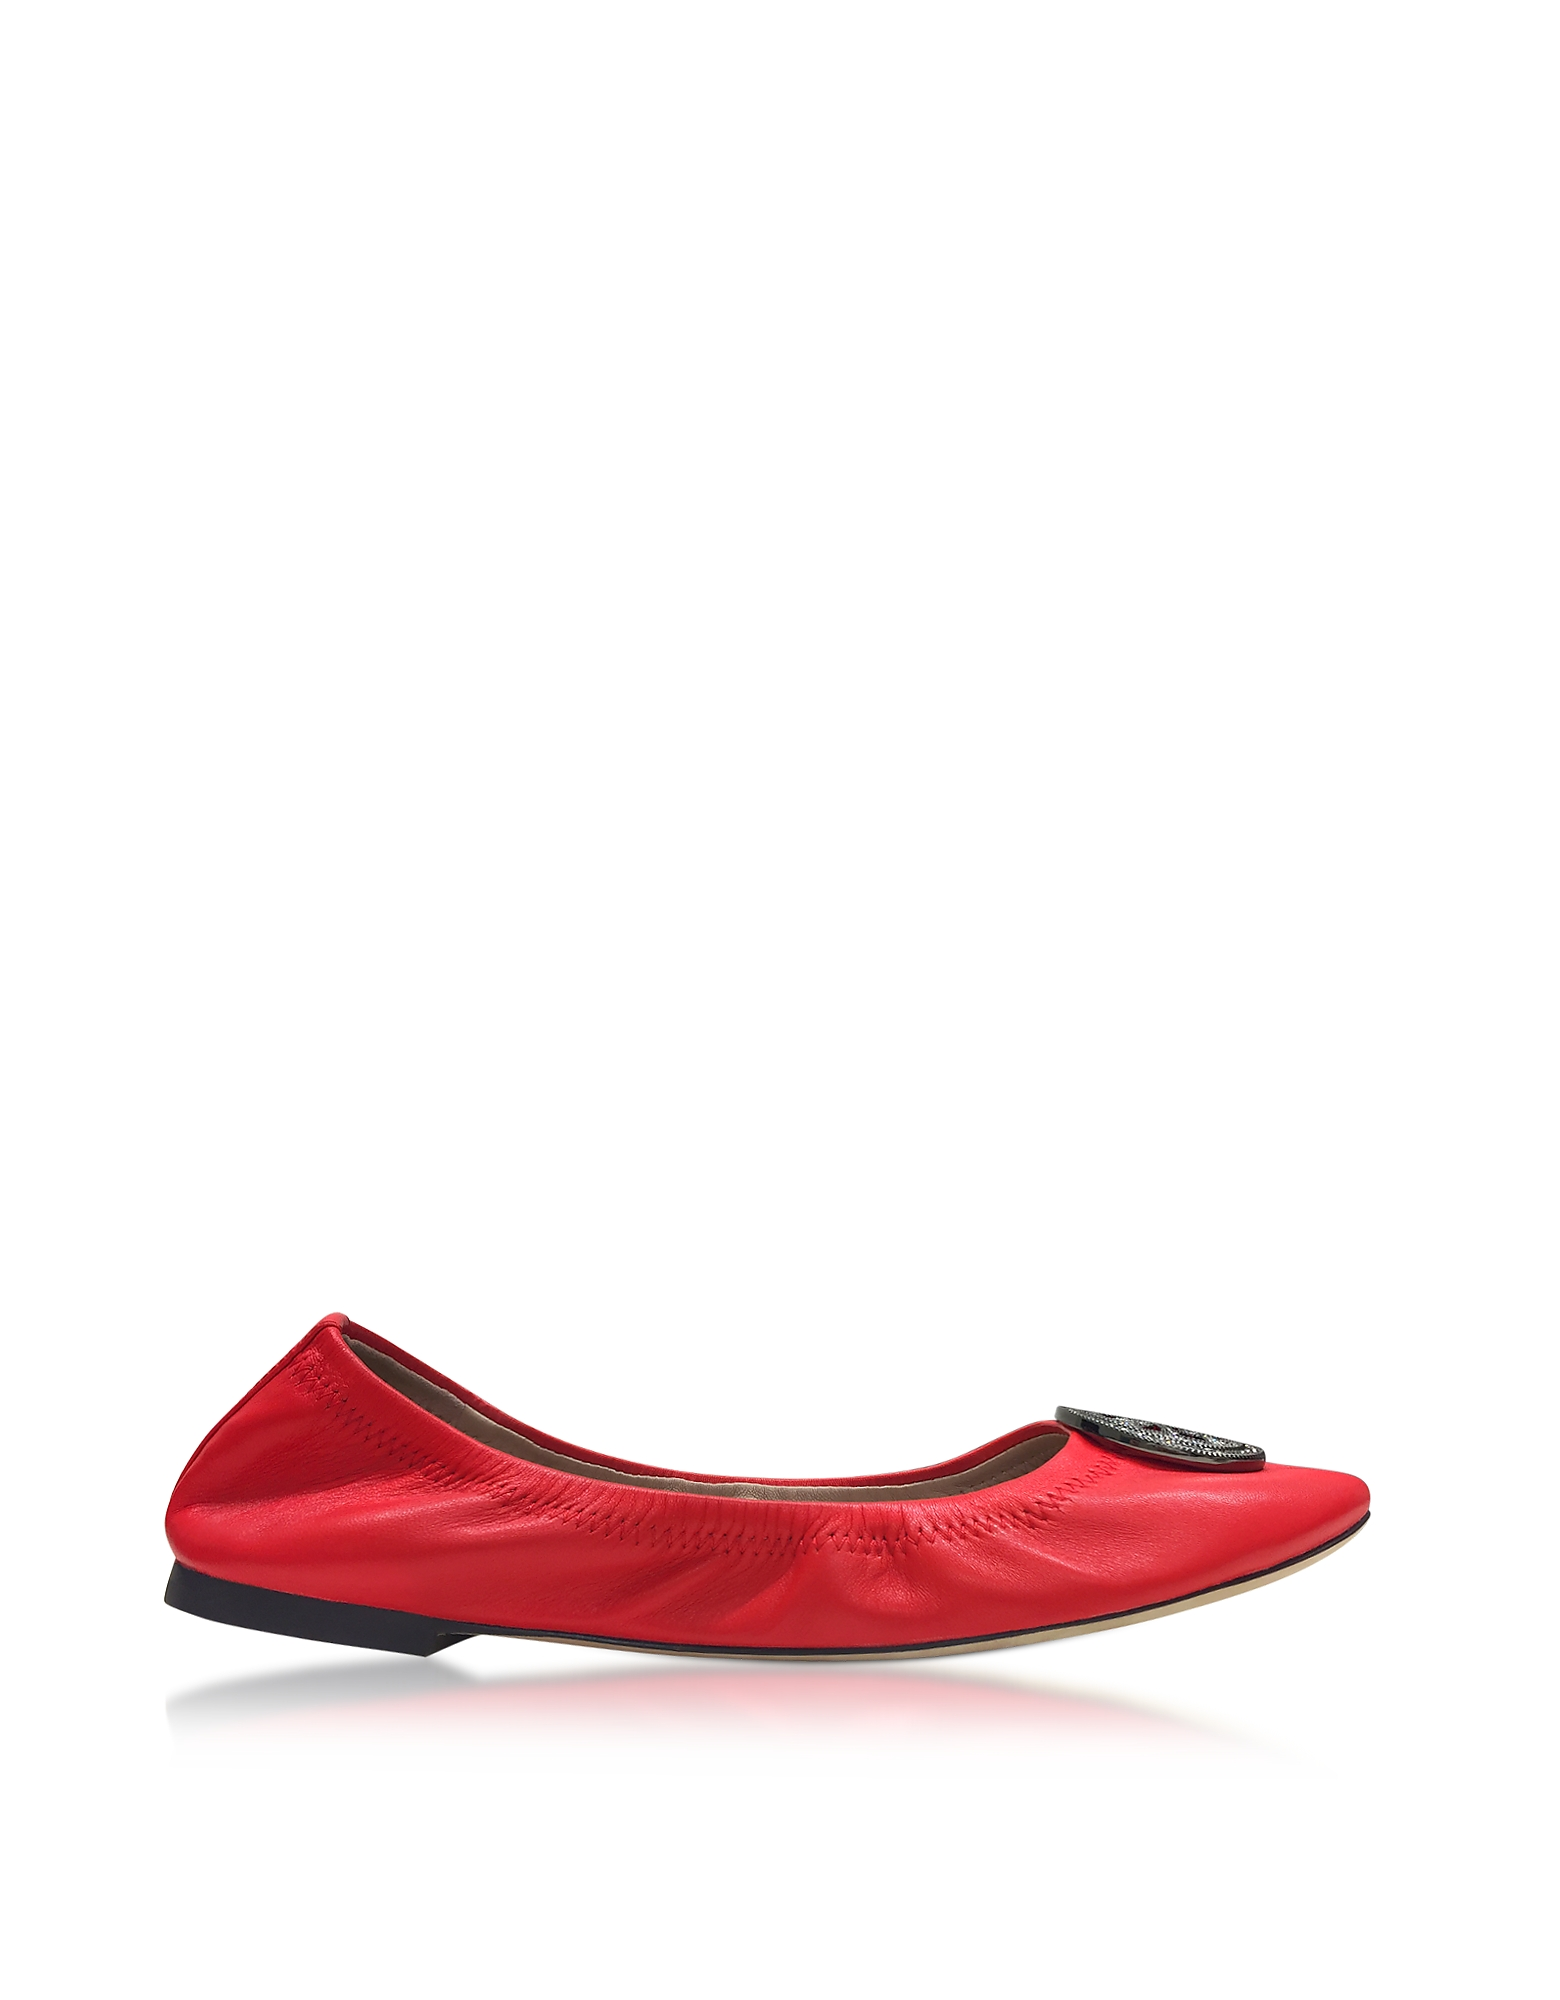 Tory Burch Shoes, Liana Exotic Red Leather Ballet Flats